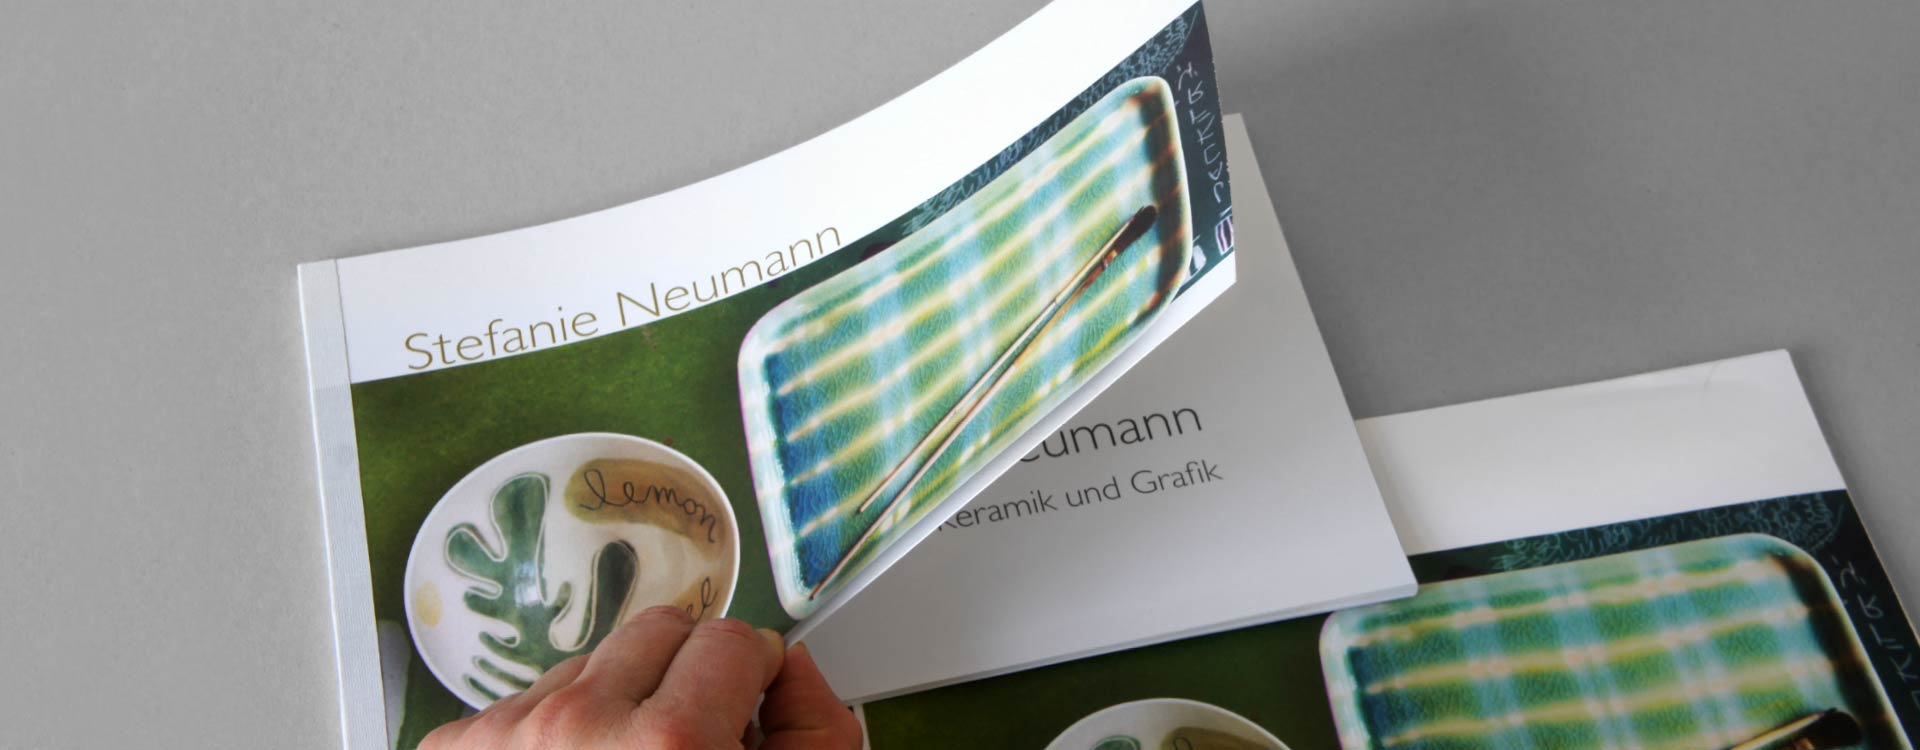 Catalogue Stefanie Neumann, Ceramics and Graphics; Design: Kattrin Richter | Graphic Design Studio